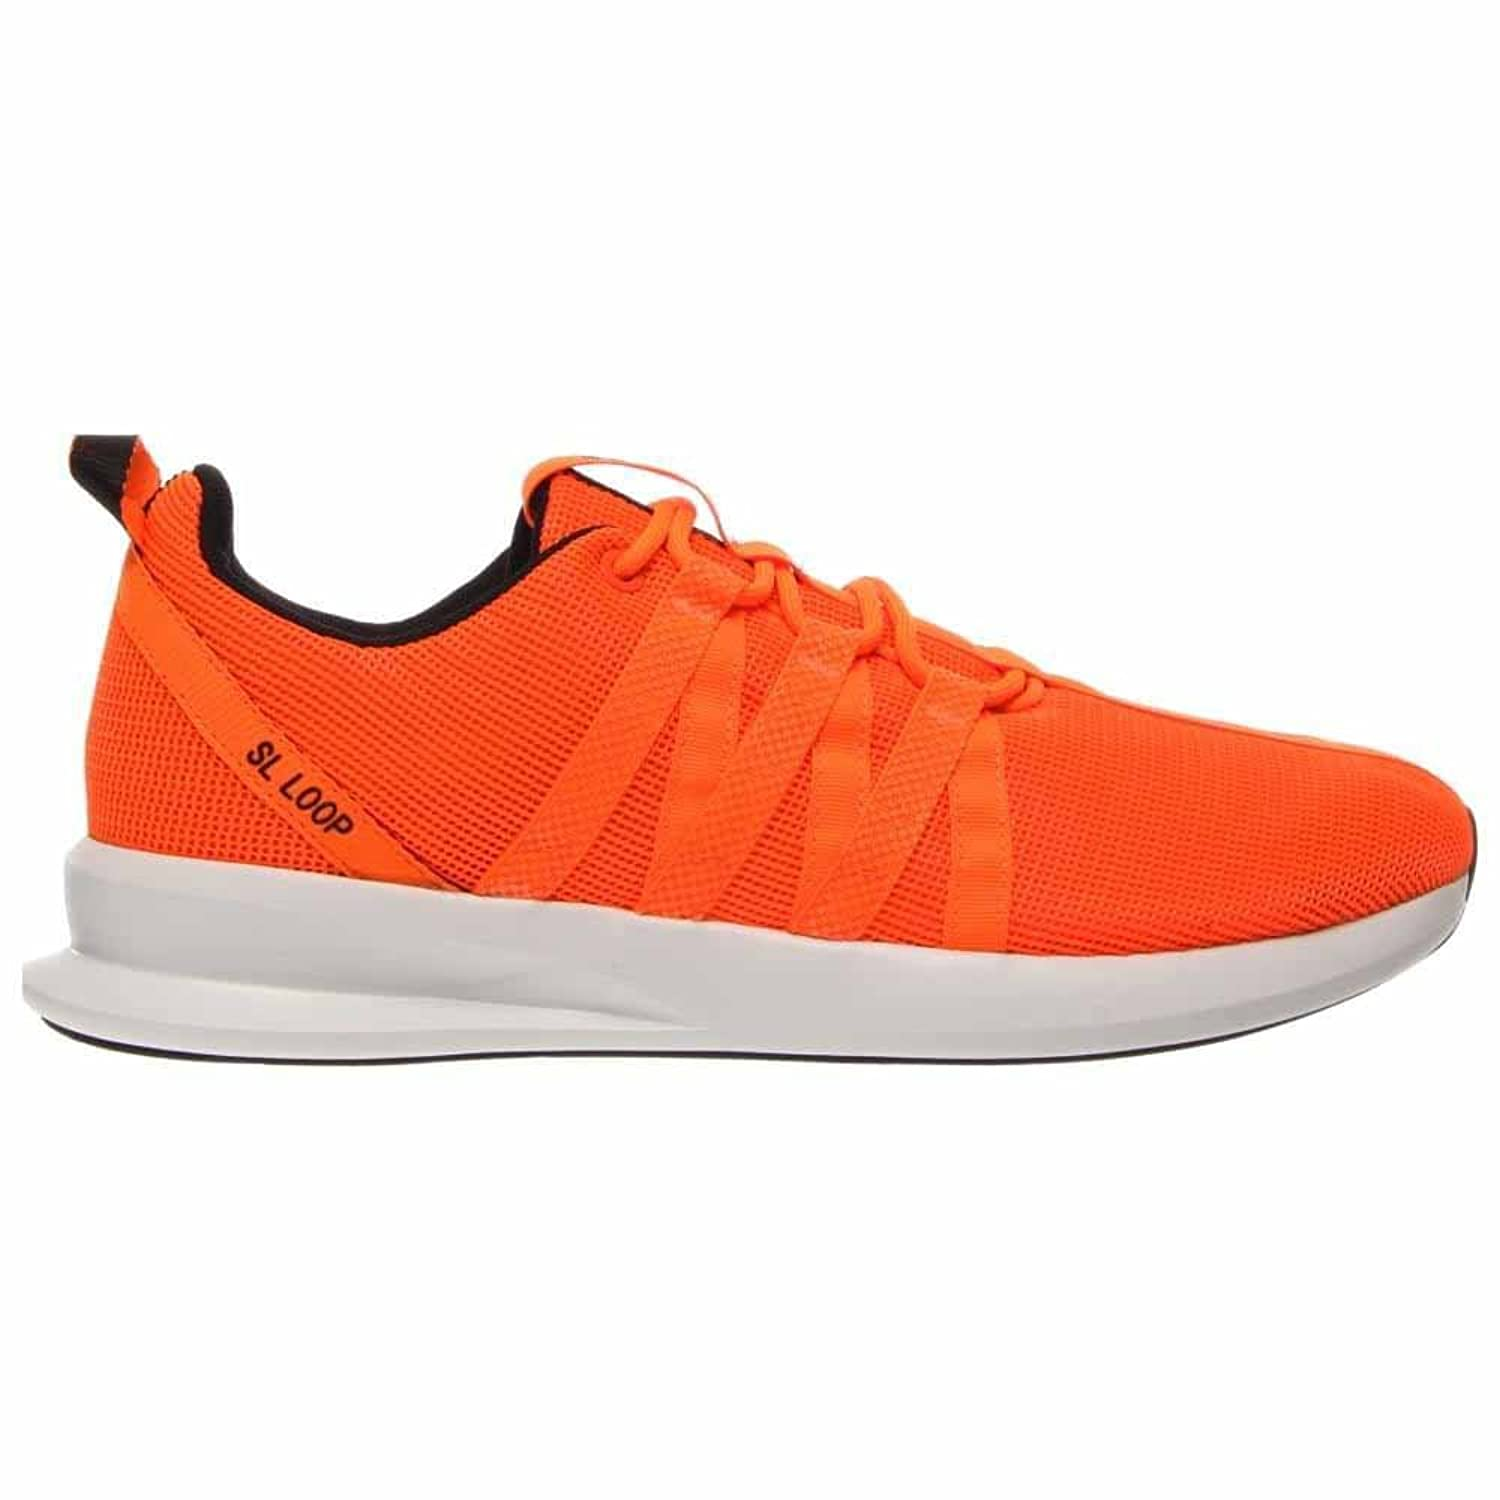 best service 167e0 20abd Amazon.com  Adidas SL Loop Racer Men Round Toe Synthetic Black Running  Shoe  Shoes